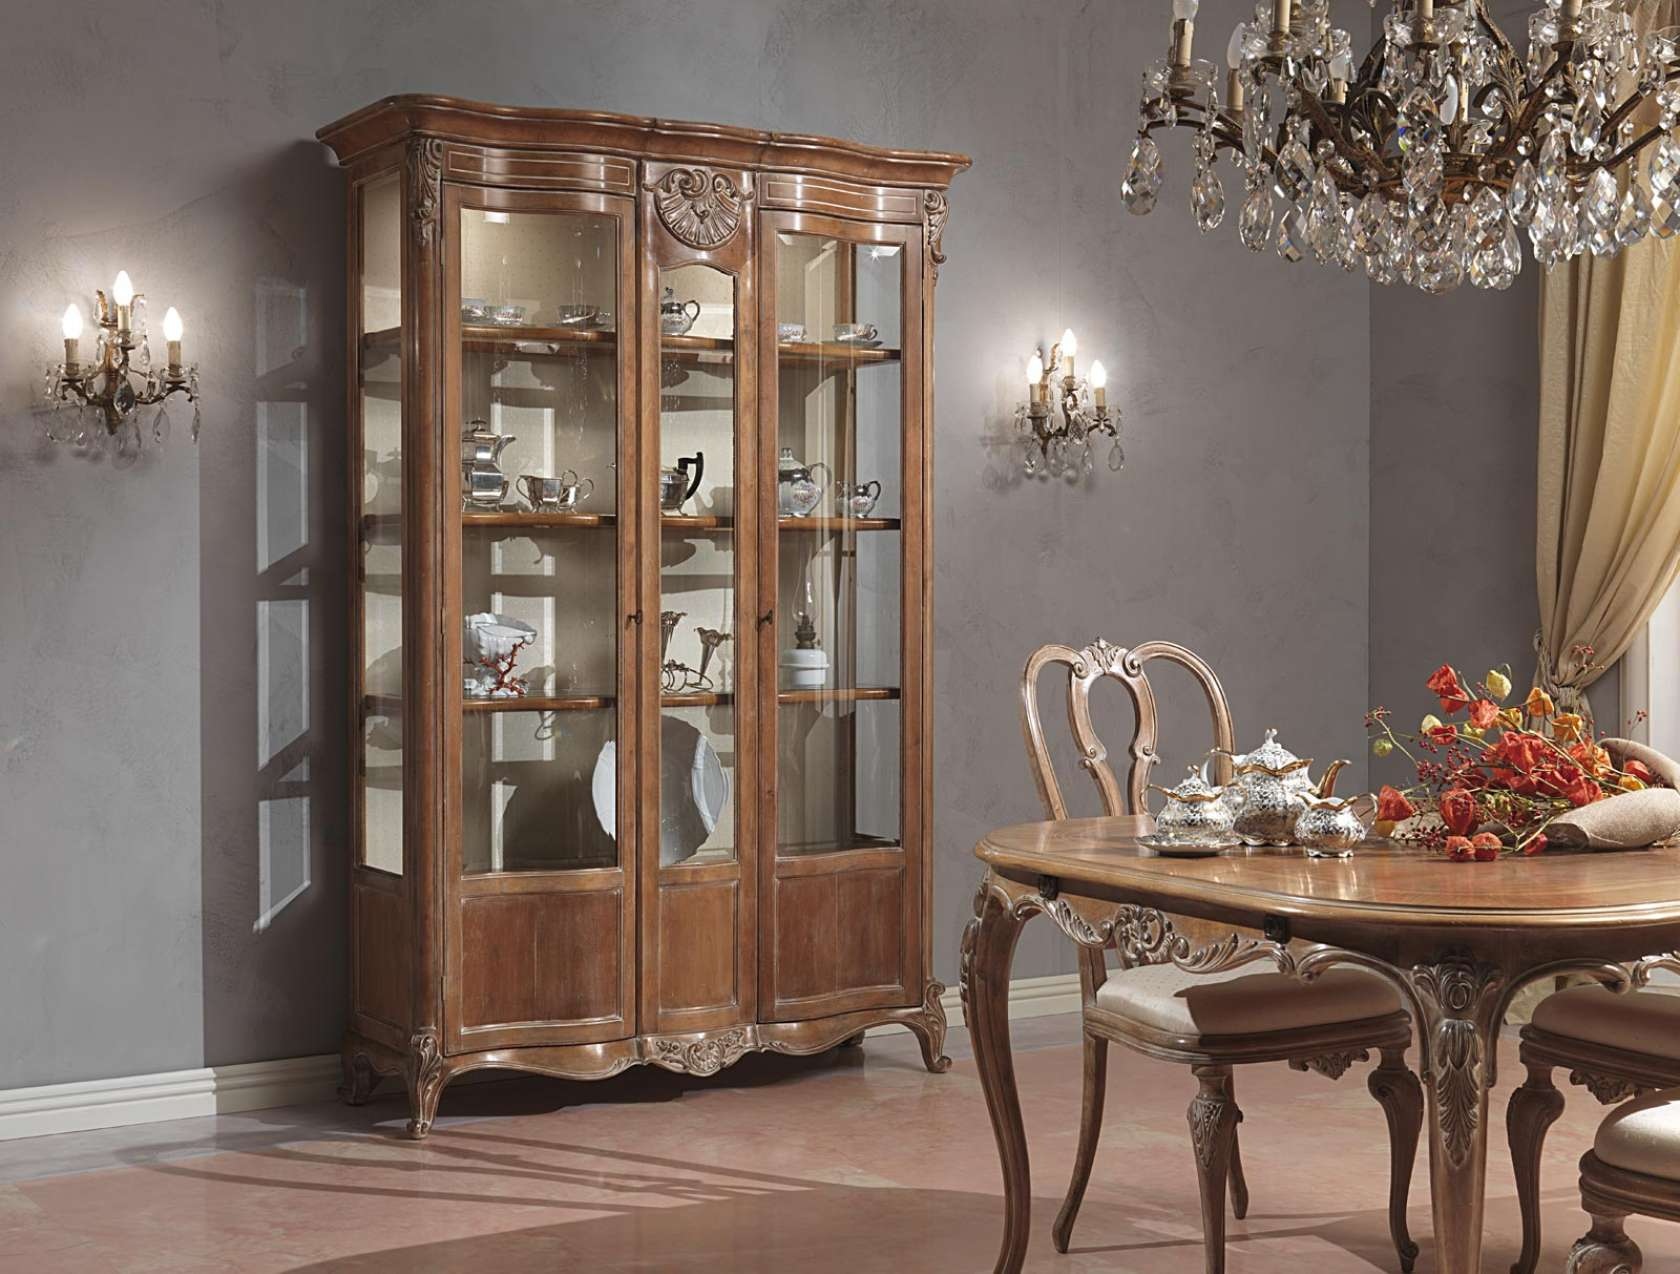 Paris dining room in Louis Xv style | Vimercati Classic Furniture